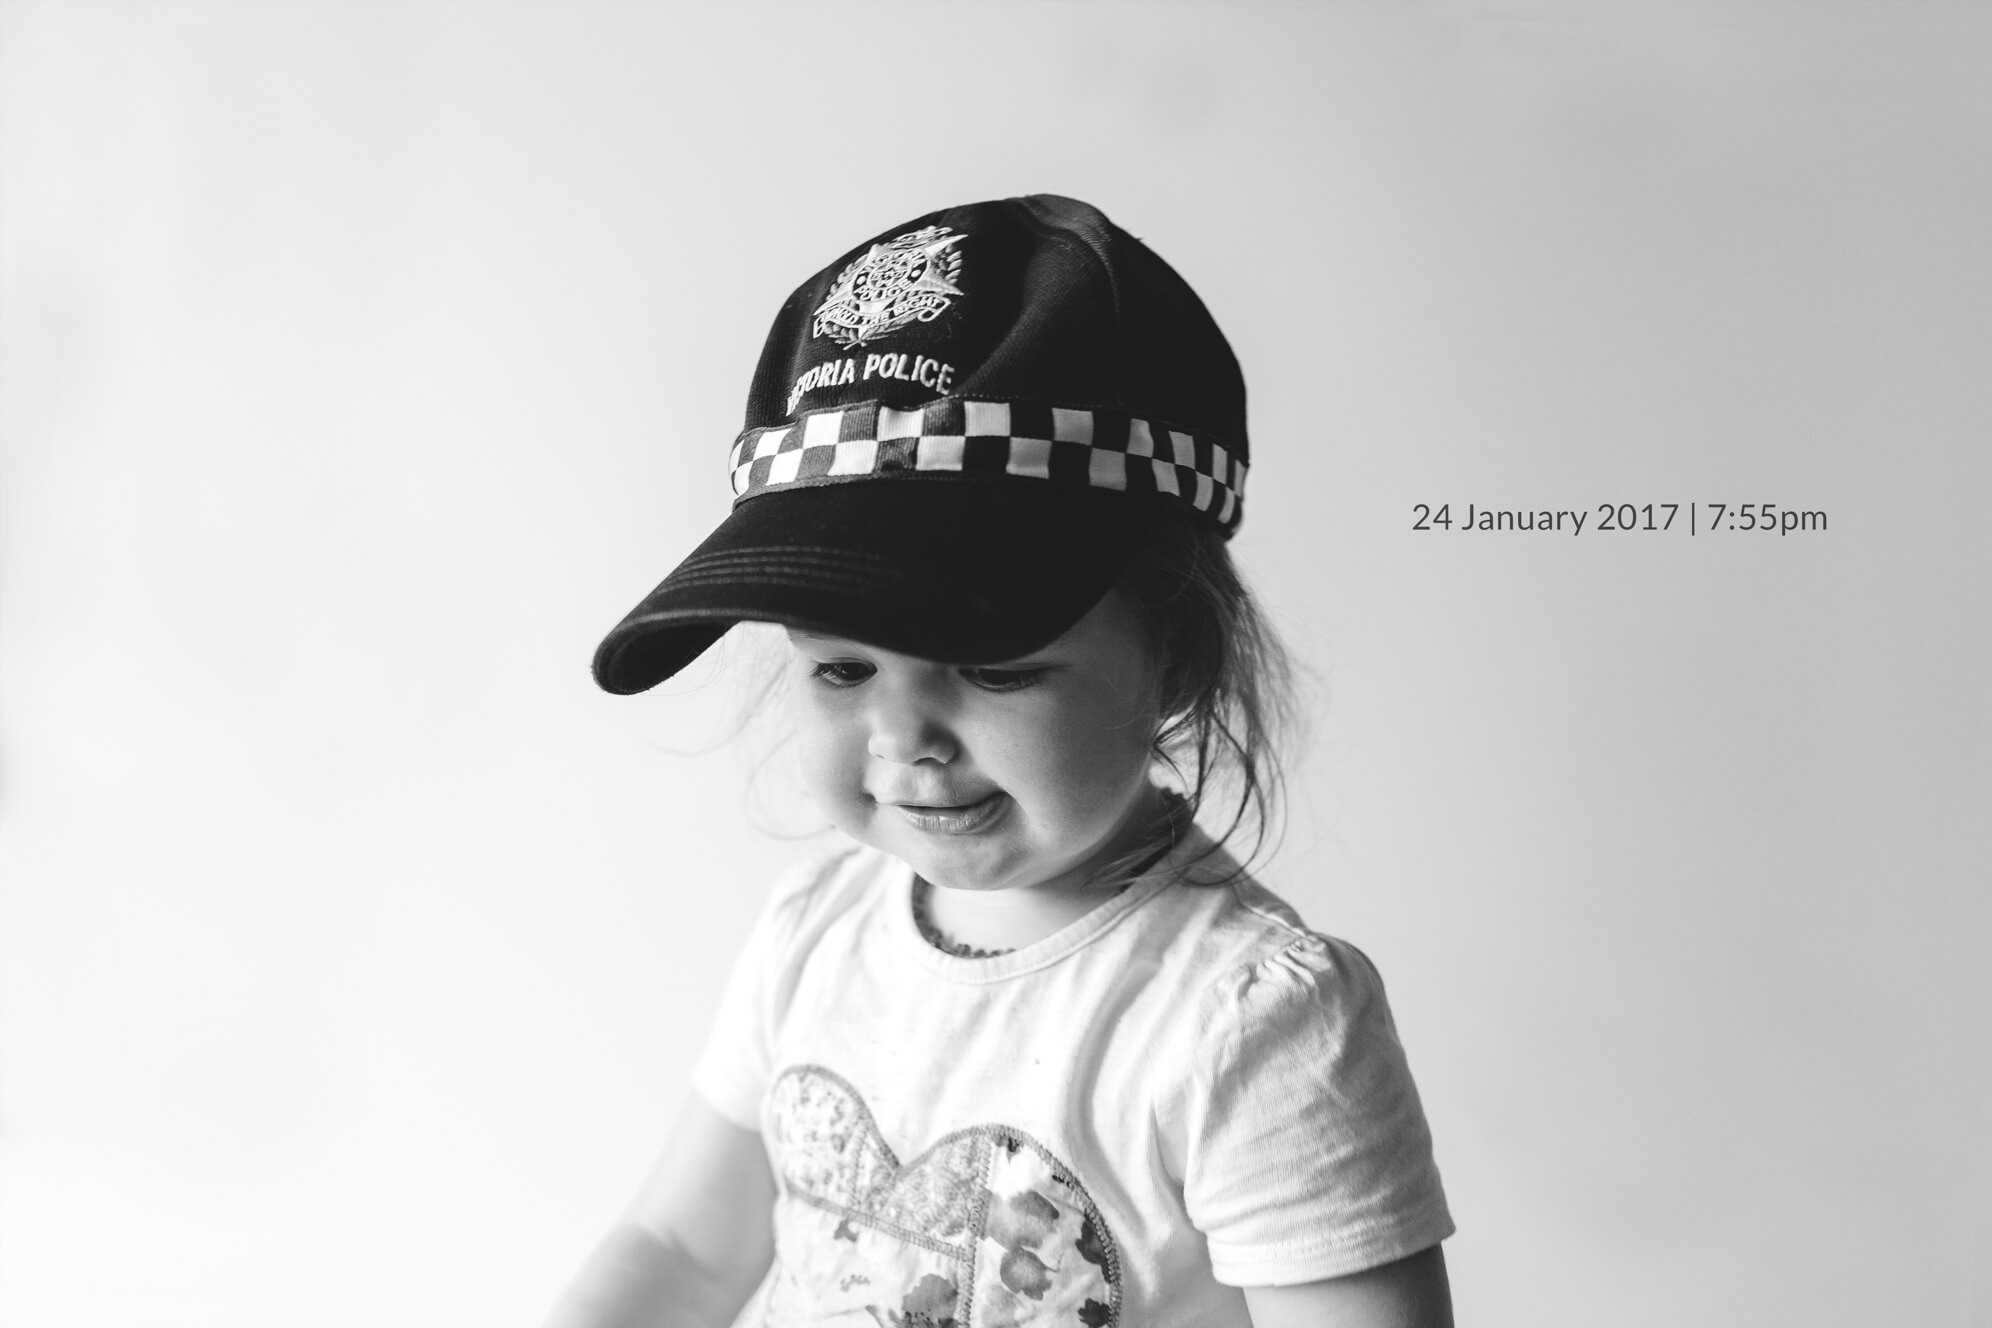 Family lifestyle photography in Melbourne. Portrait of a toddler wearing a police cap.